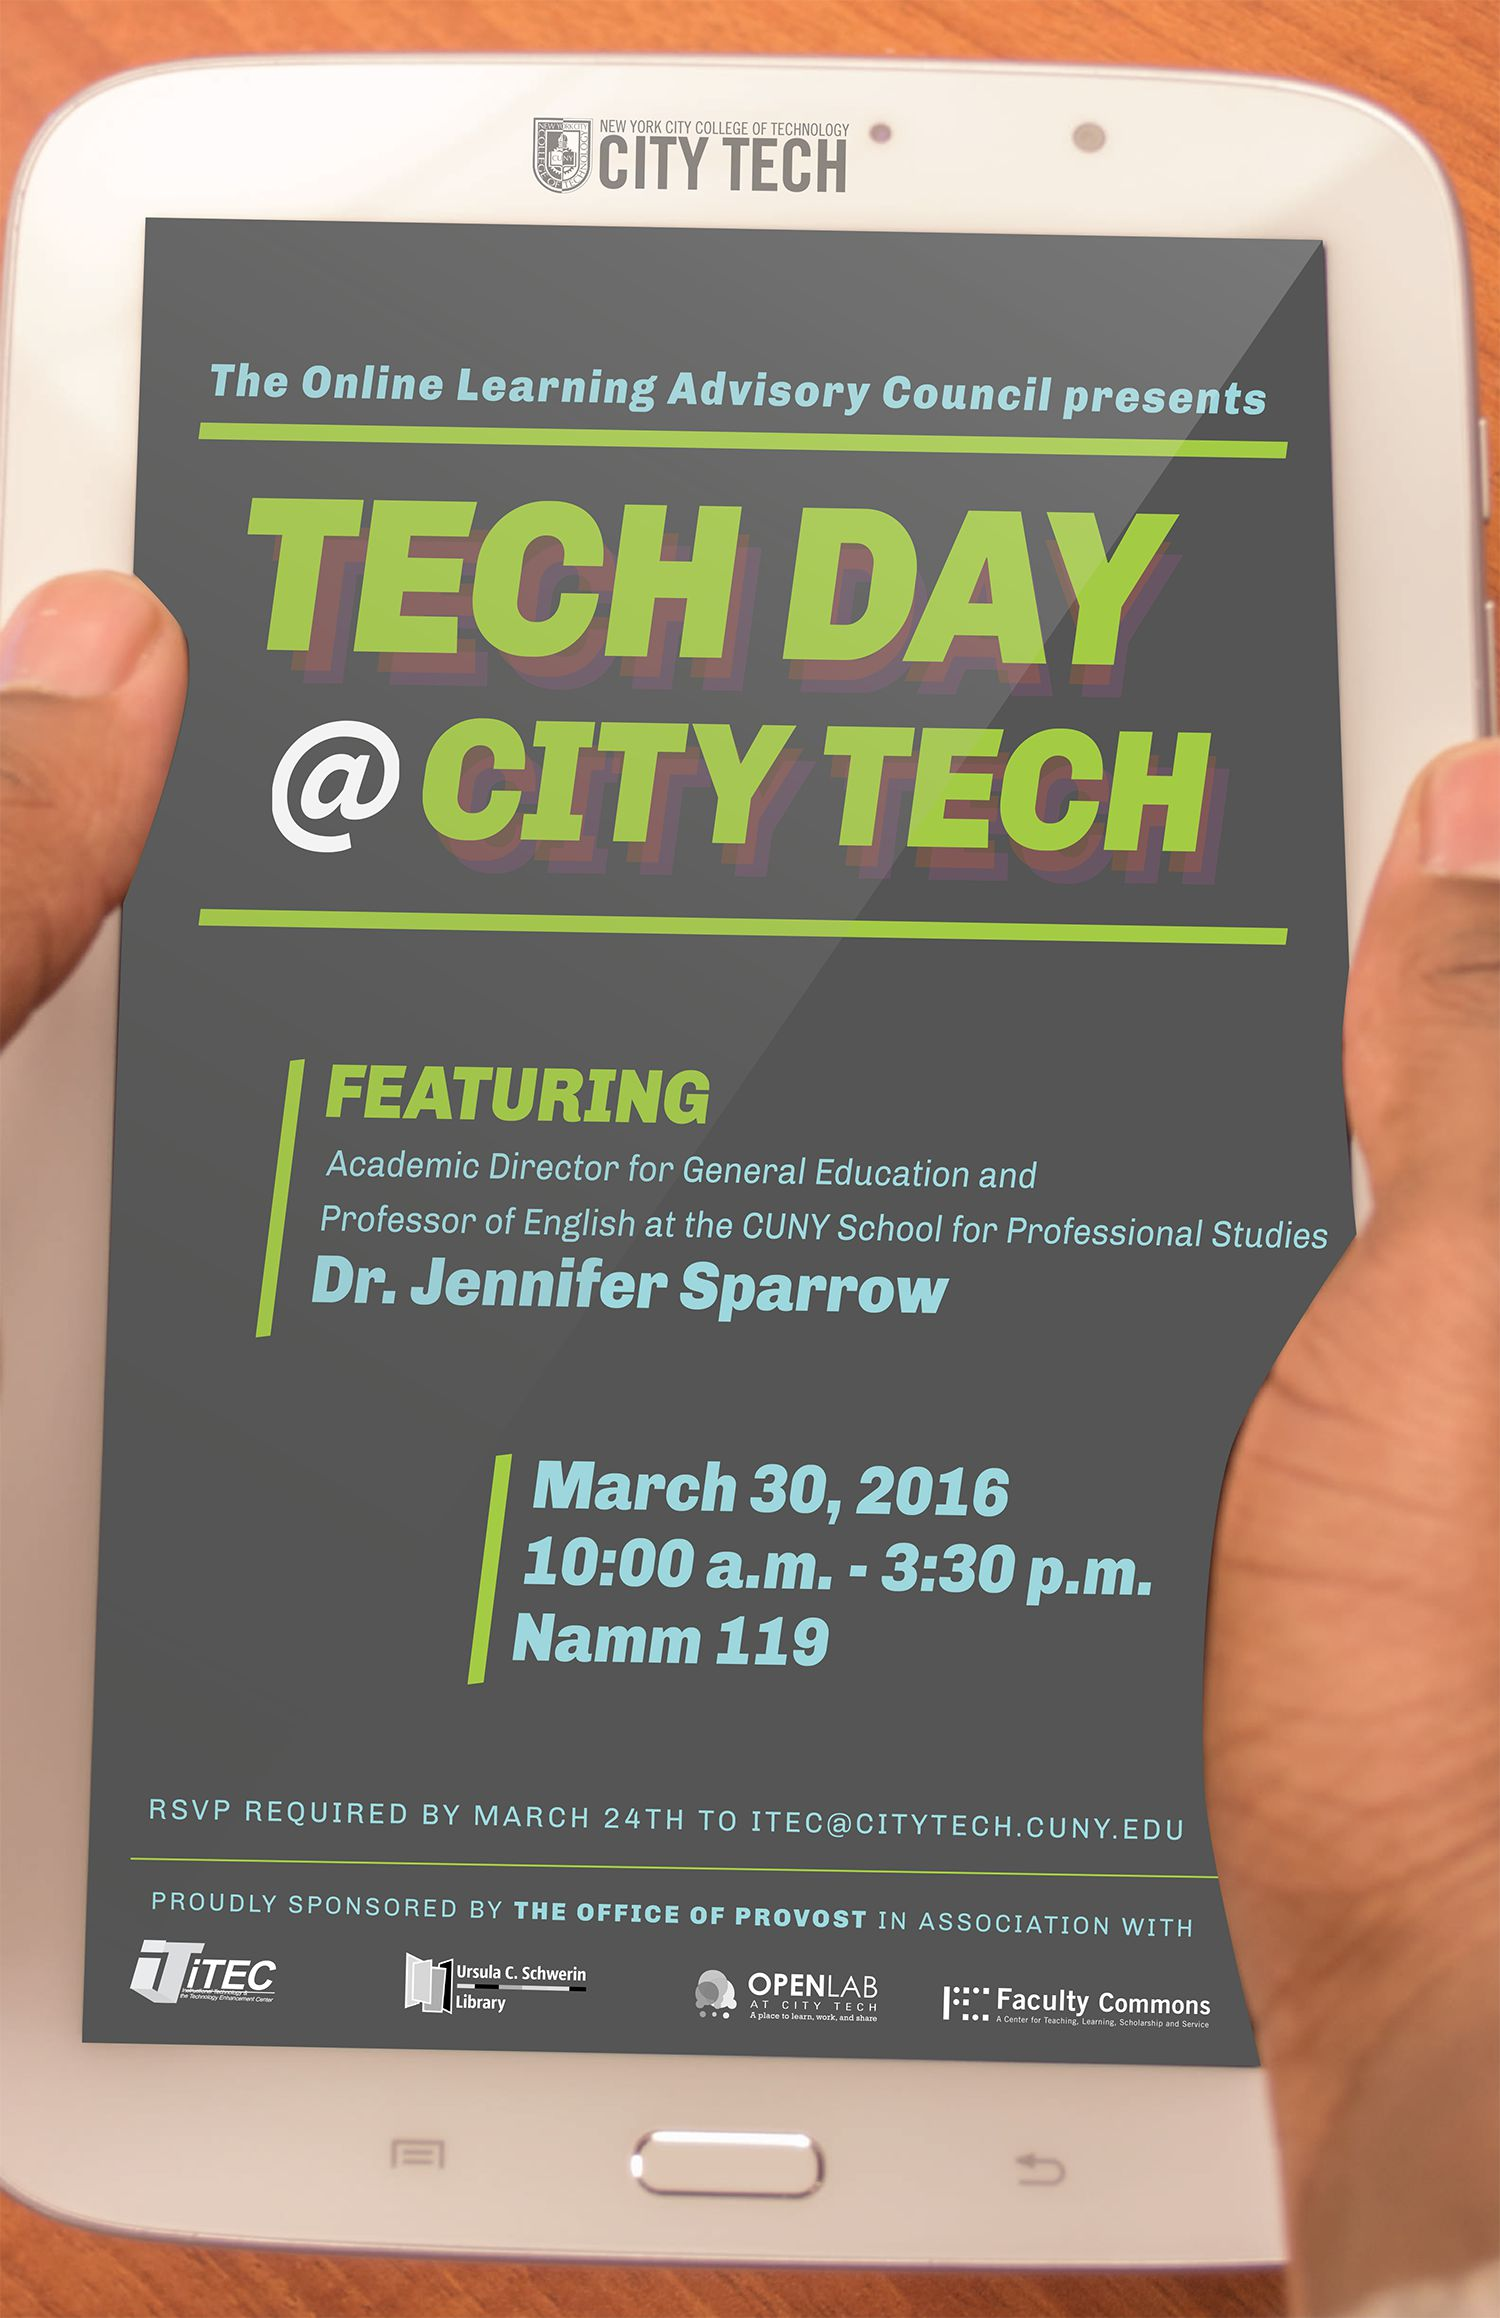 FC_TechDay_Poster_03-9-16_final_W